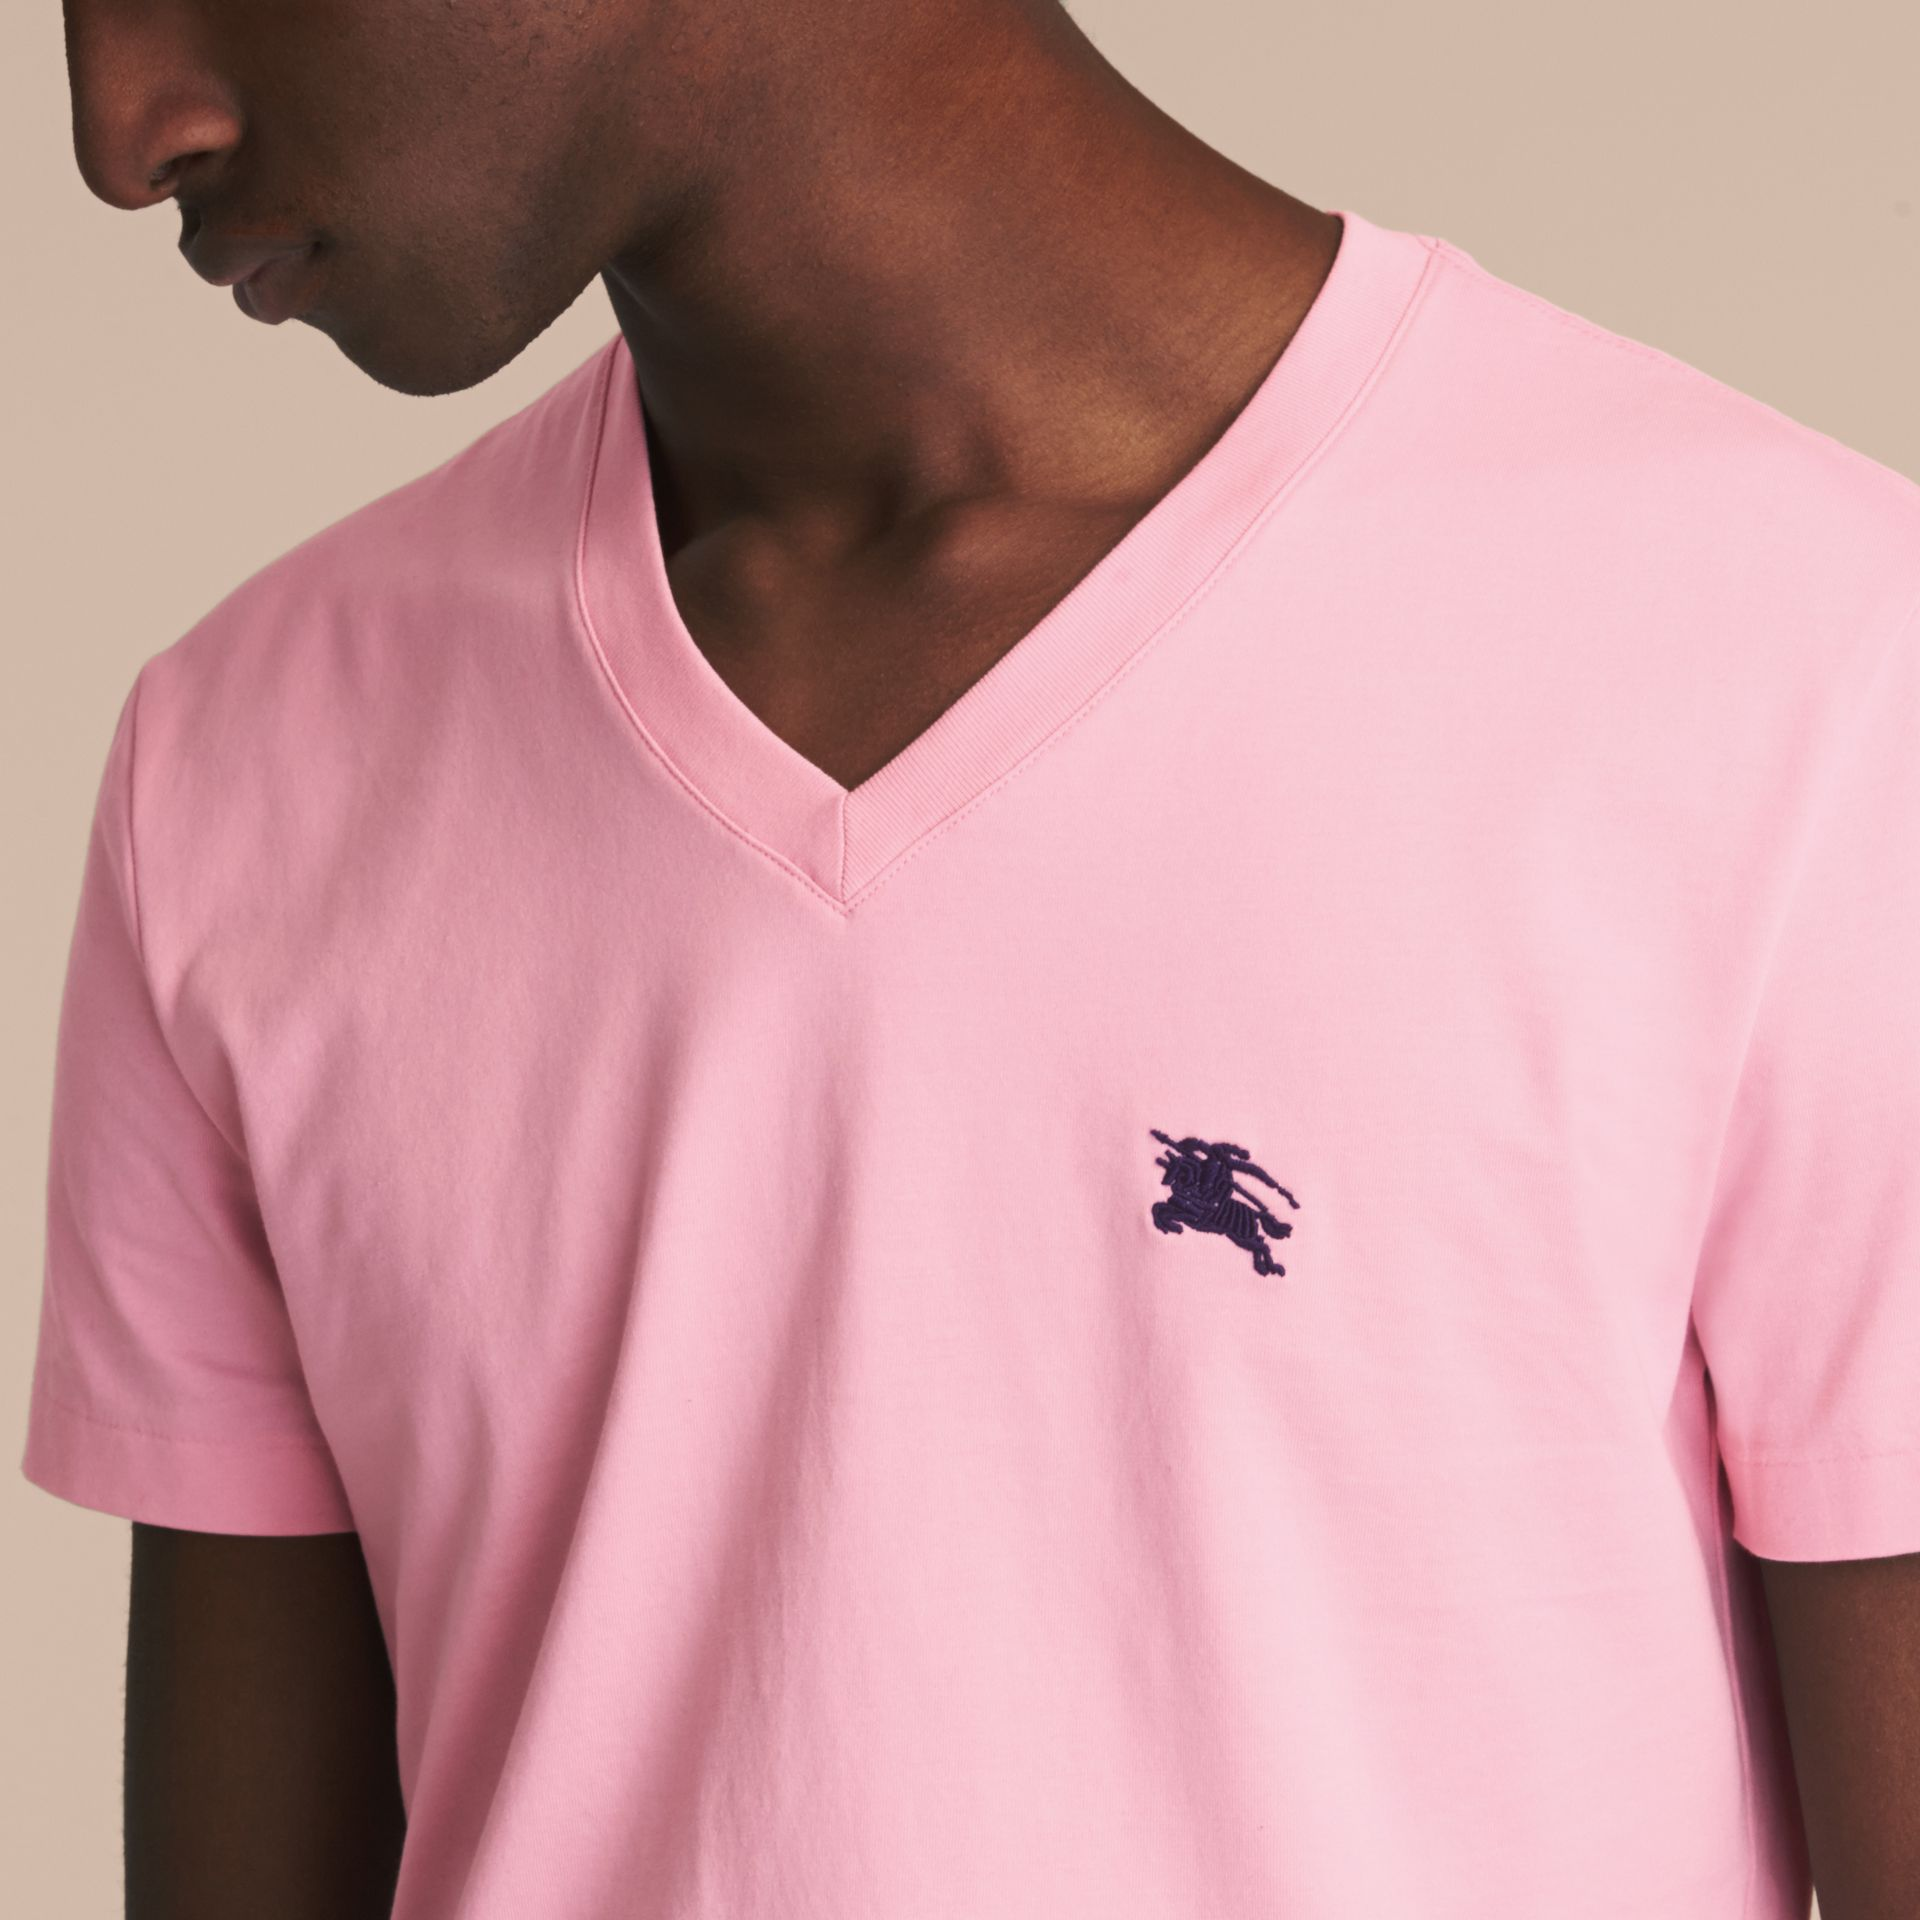 Cotton V-neck T-shirt in Light Pink - Men | Burberry - gallery image 4